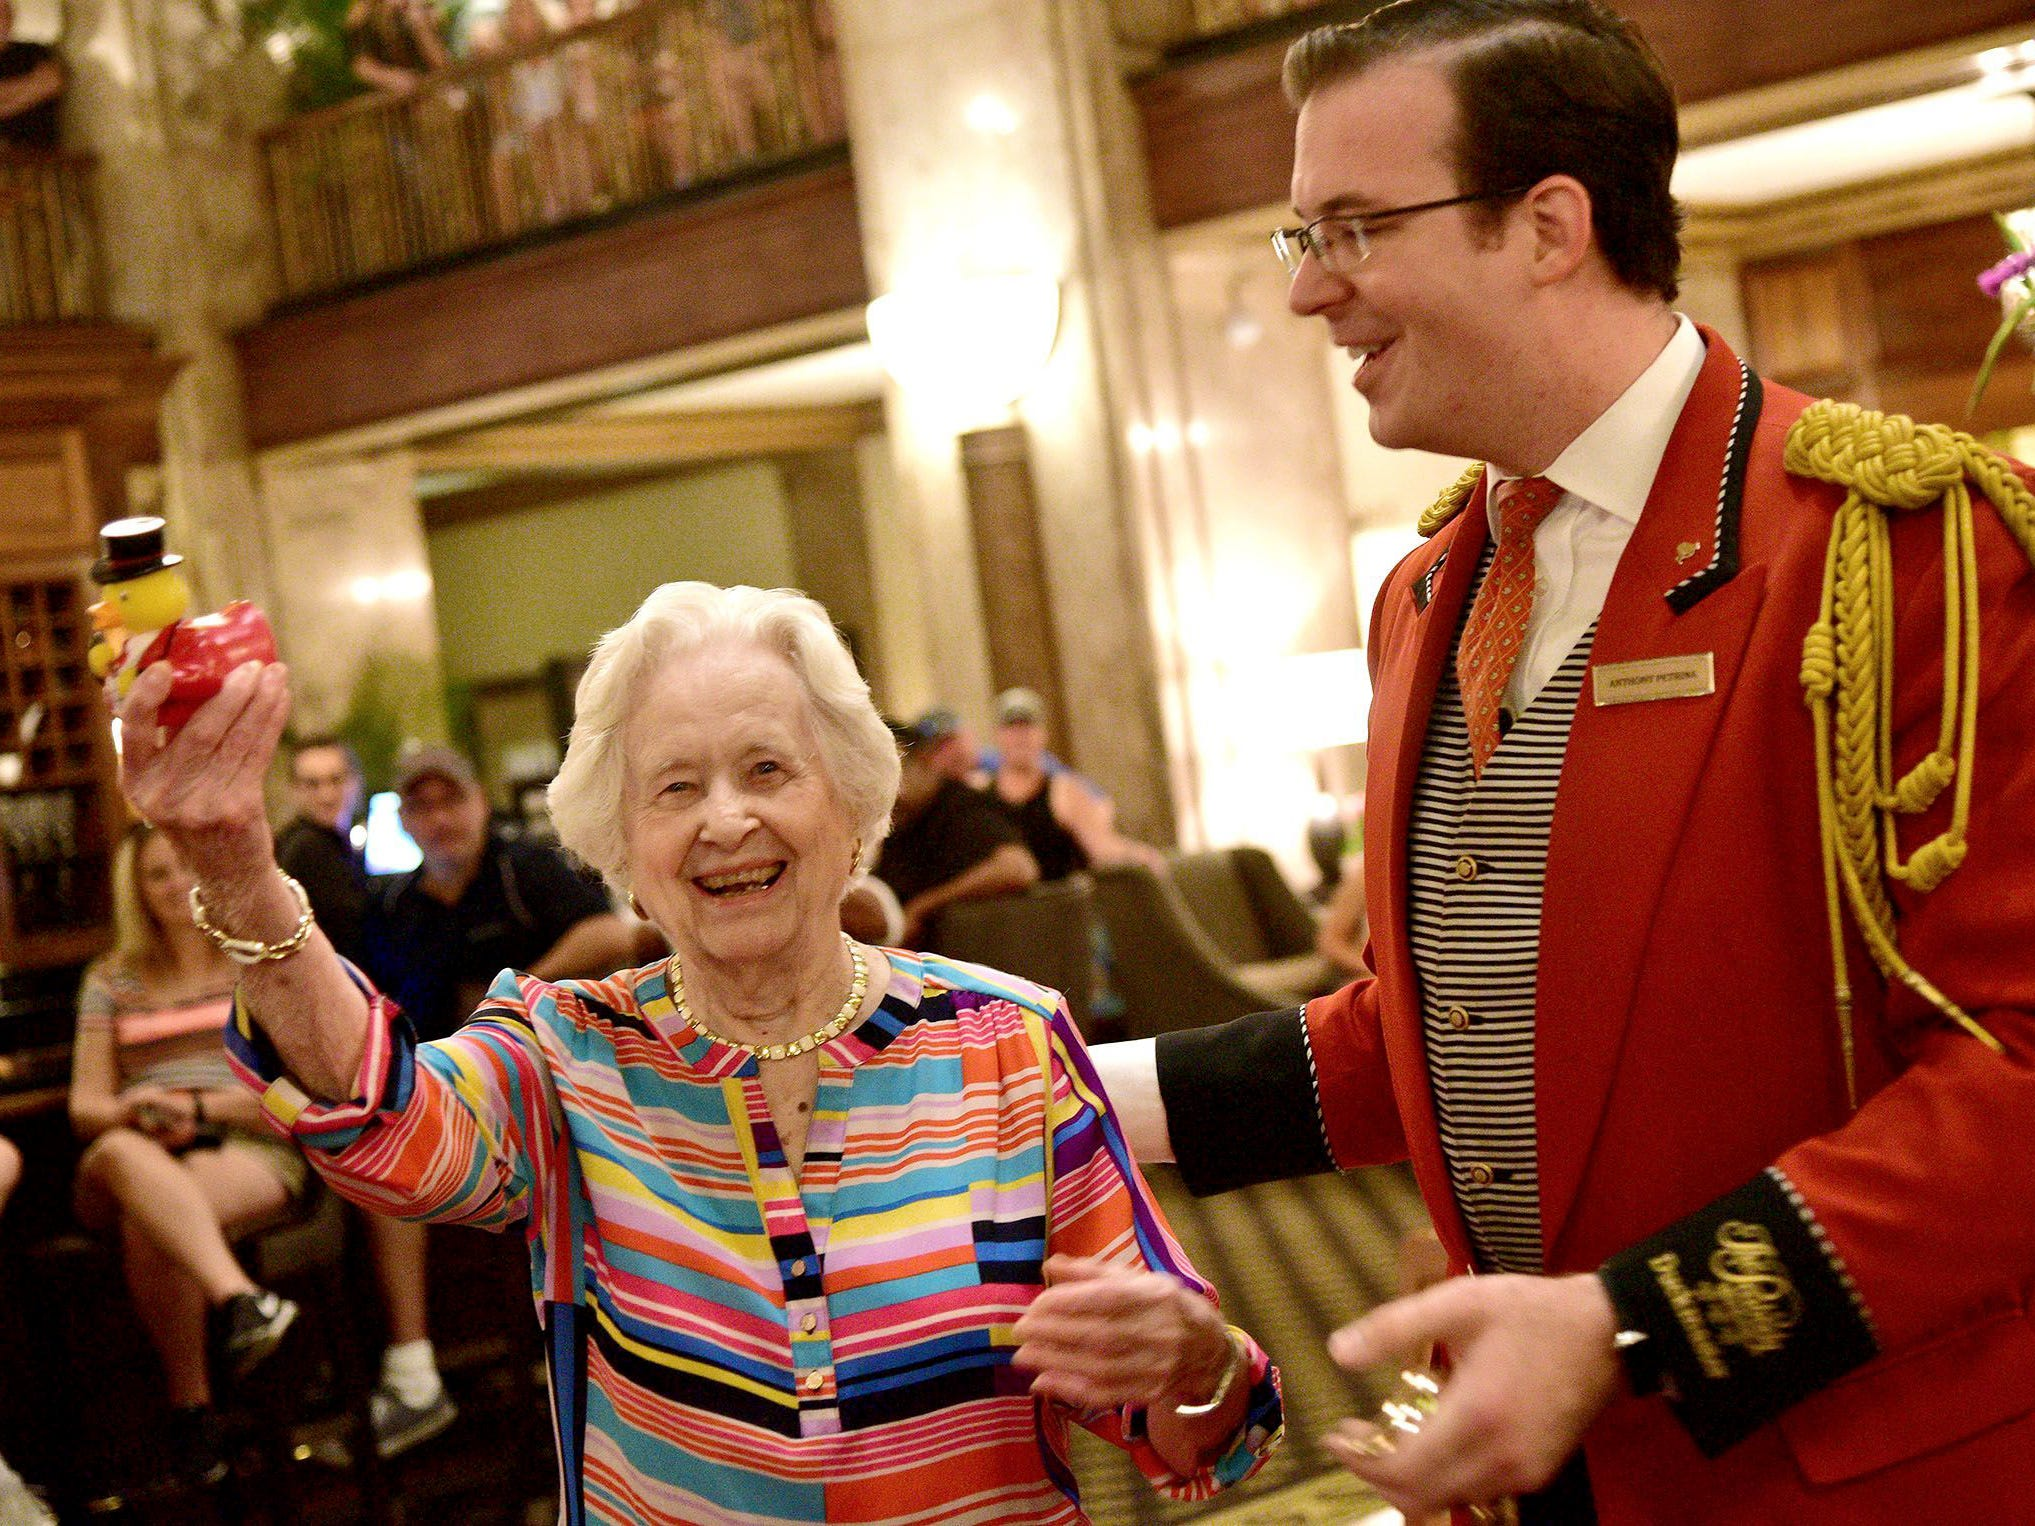 Minnie Opal  Hill displays a rubber duck presented to her by Peabody Duckmaster Anthony Petrina. Hill celebrated her 100th birthday July 28, 2018, at The Peabody Hotel by being named honorary Duckmaster.